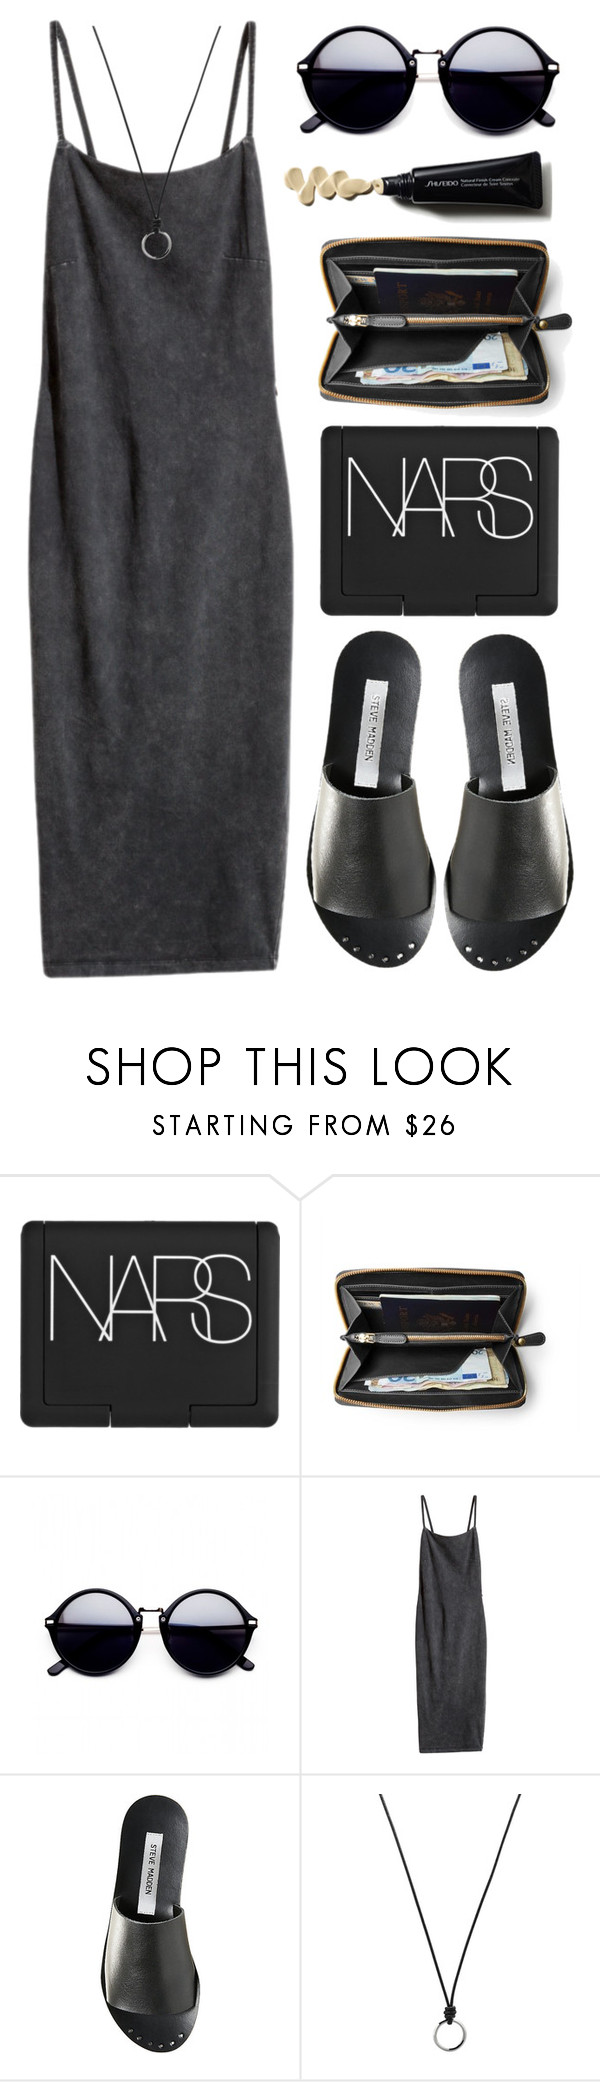 """#449"" by the777 ❤ liked on Polyvore featuring NARS Cosmetics, H&M, Steve Madden and FOSSIL"